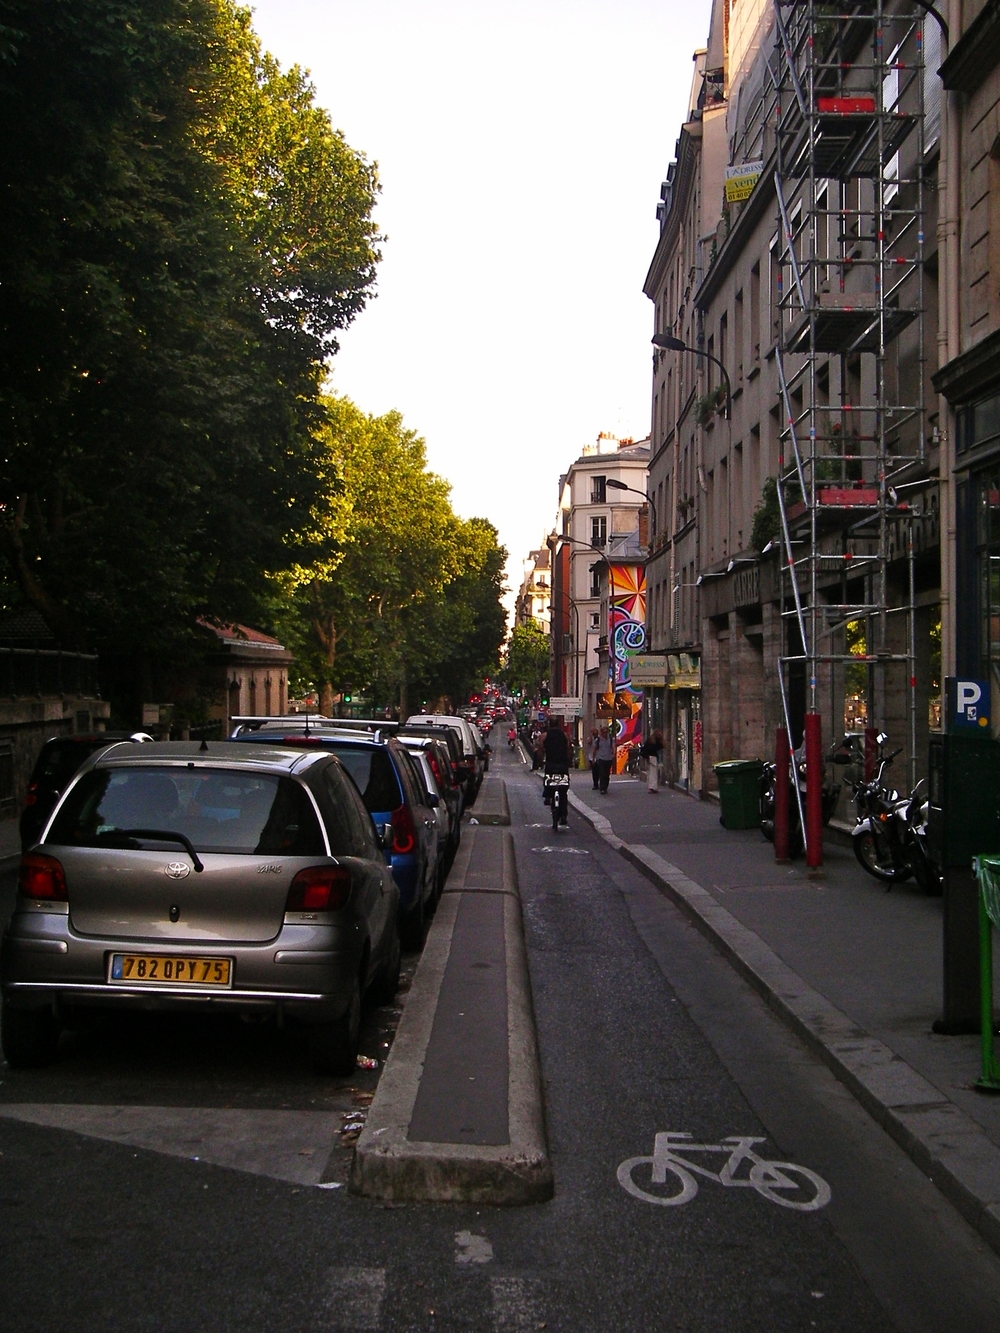 Separated bike lanes abound in Paris. This one parallels the Canal St.-Martin (on the left in this photo), which traverses the 11th and 10th arrondissements.